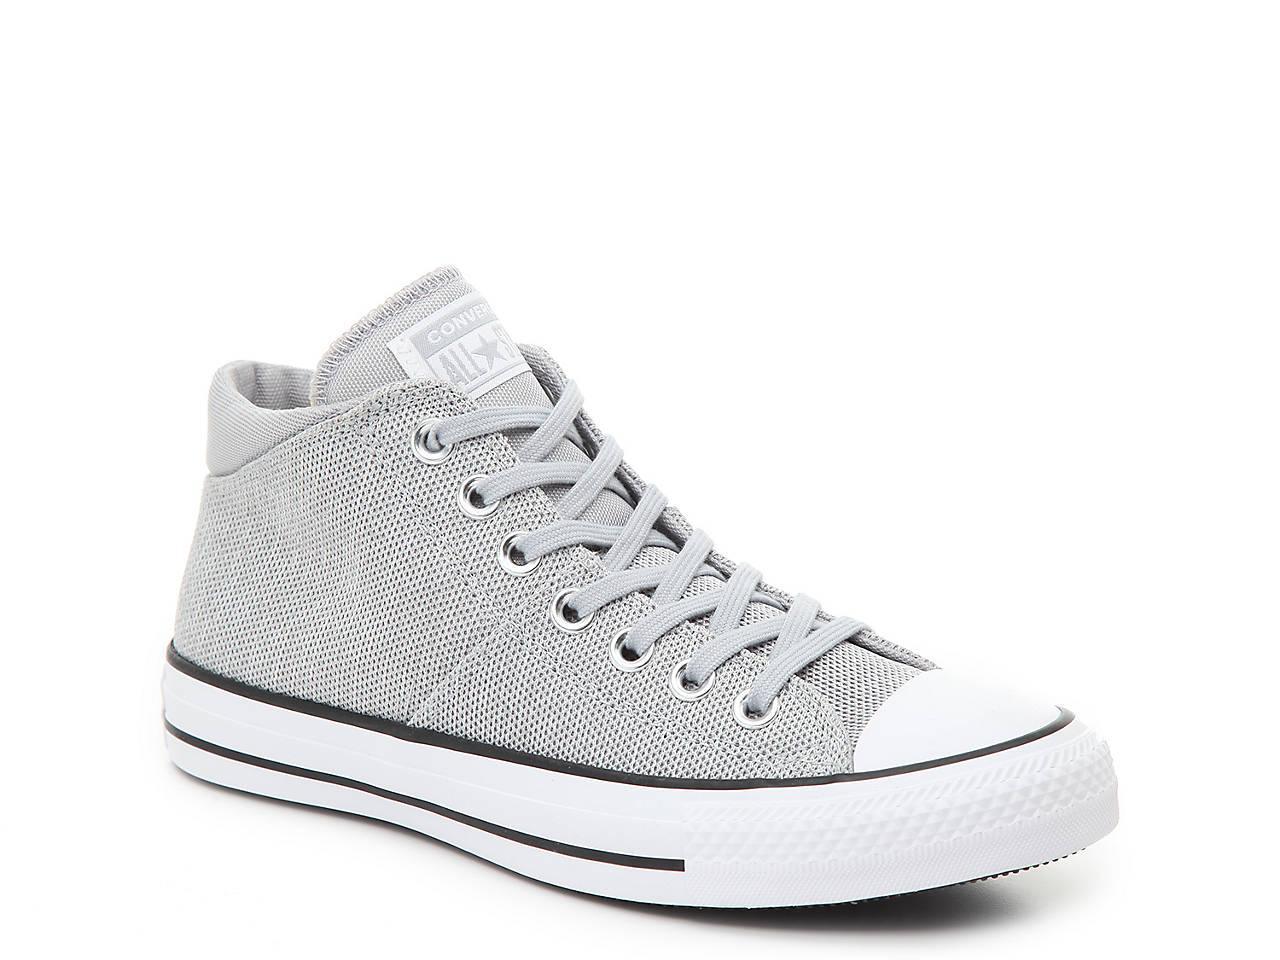 Converse Chuck Taylor All Star Madison Mid-Top Sneaker - Women s ... 79c7d4d07